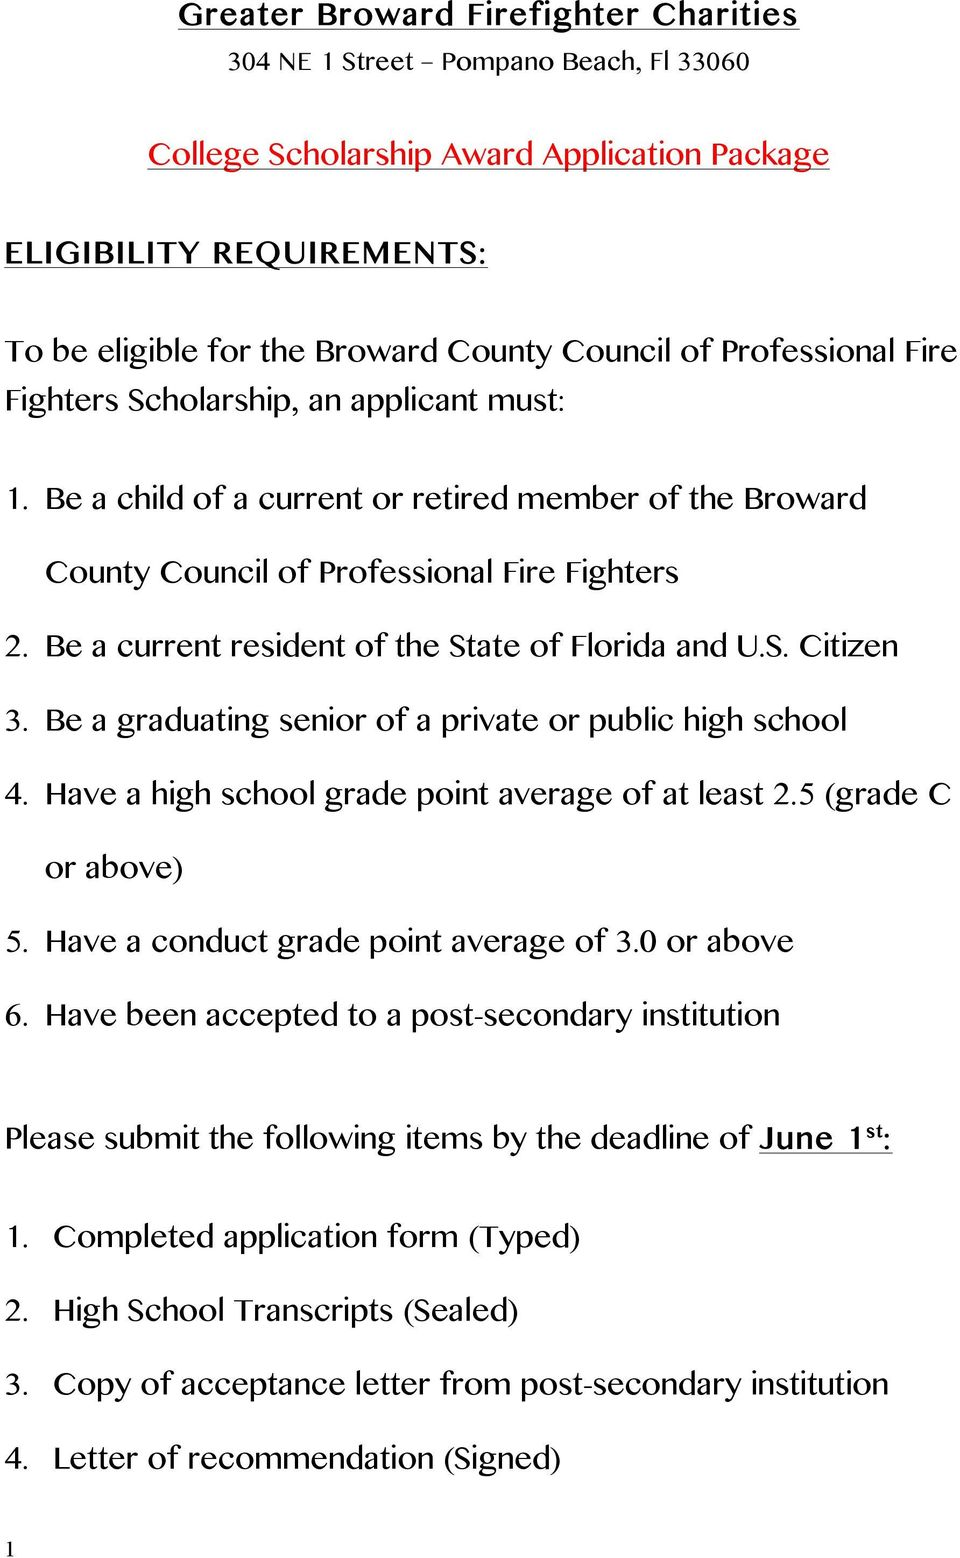 Be a current resident of the State of Florida and U.S. Citizen 3. Be a graduating senior of a private or public high school 4. Have a high school grade point average of at least 2.